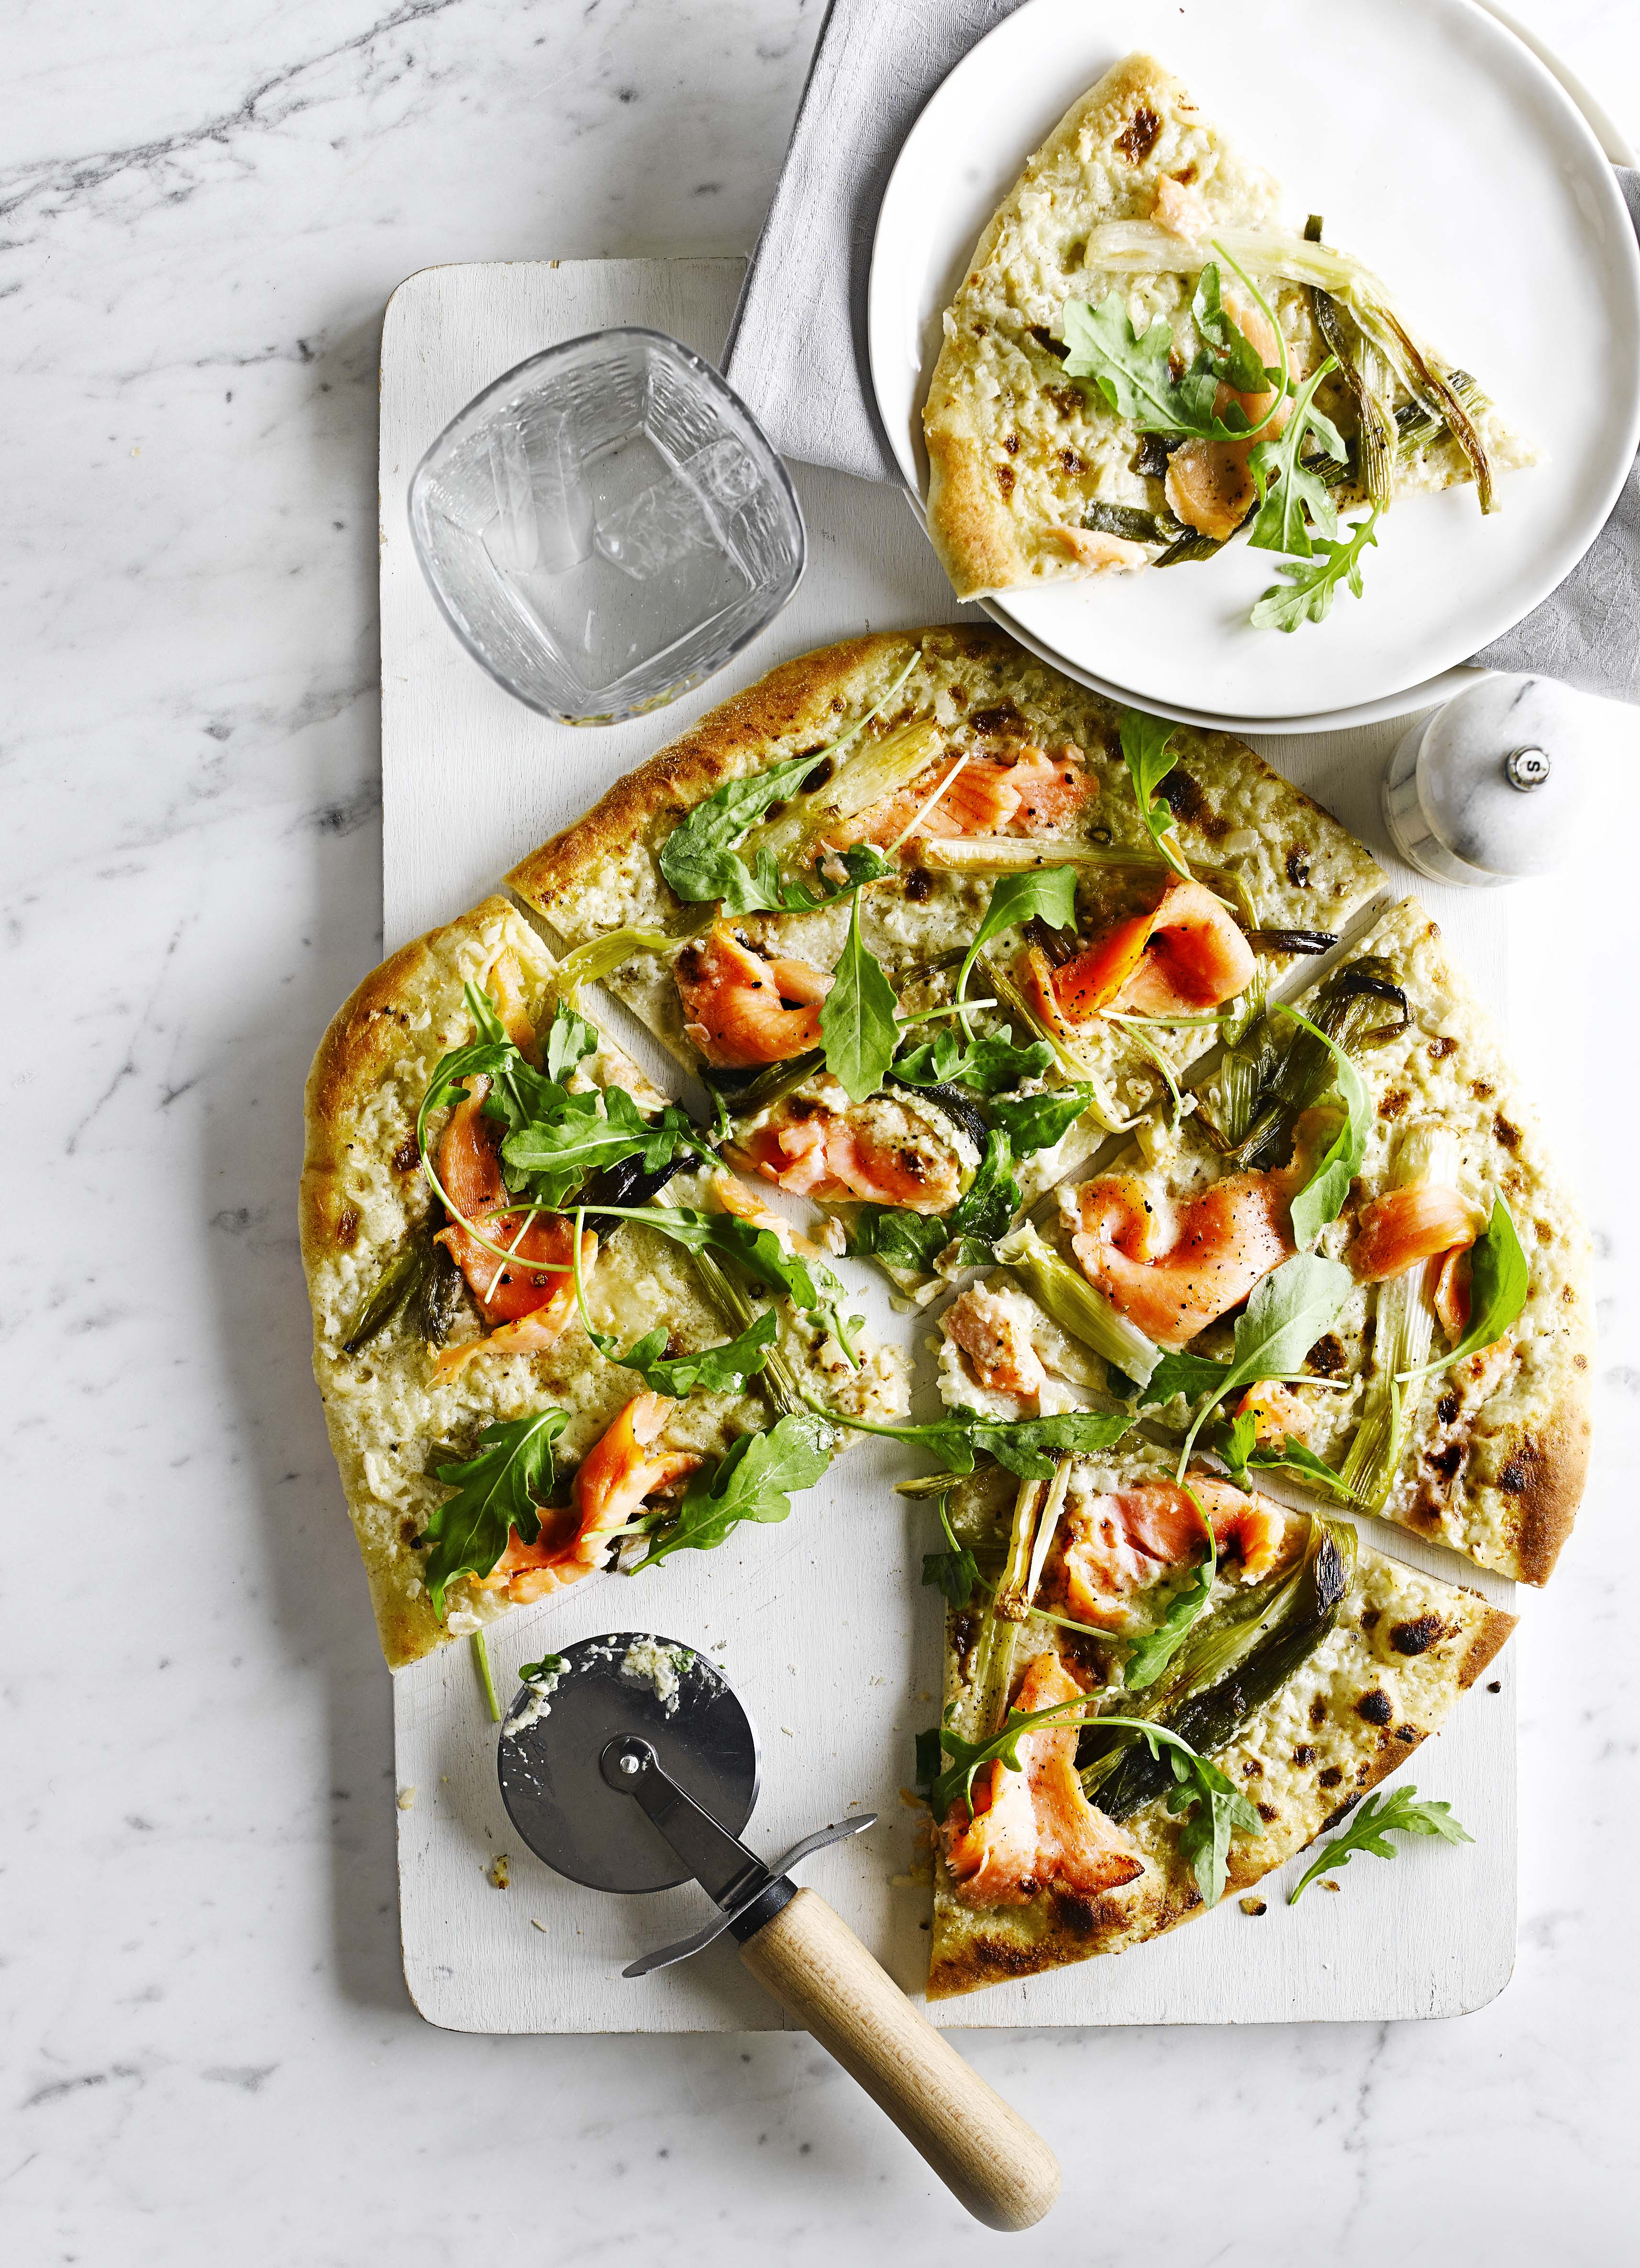 Pizza bianca with smoked salmon and spring onions